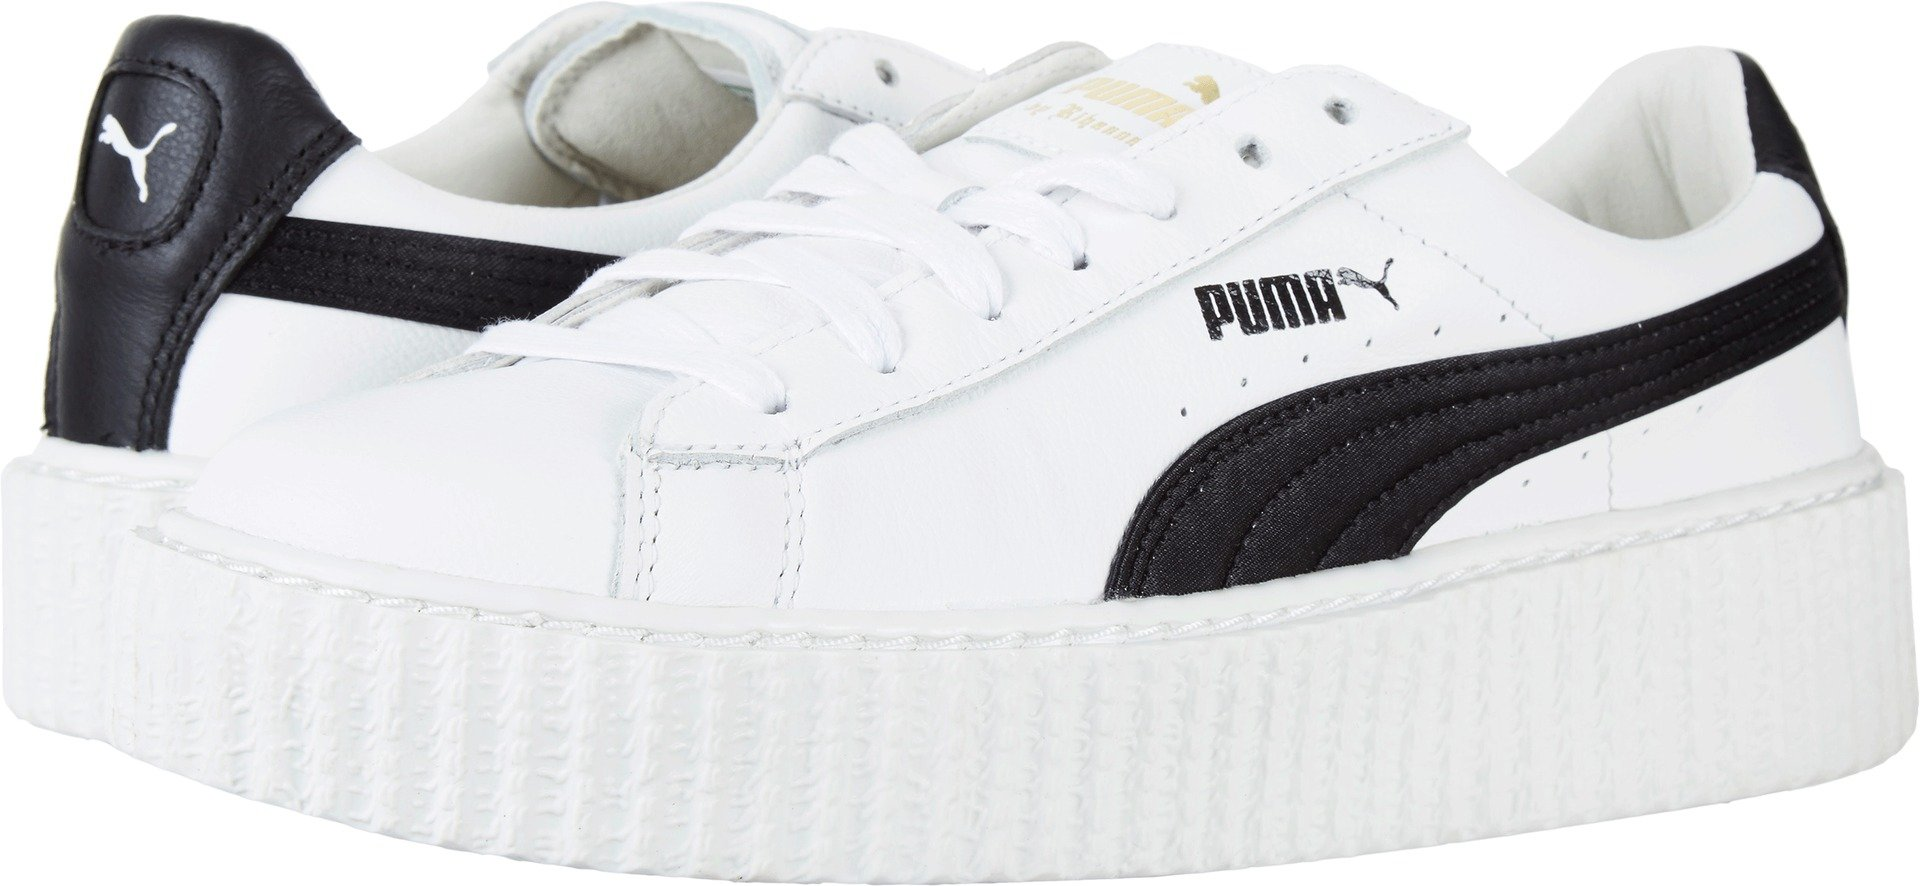 PUMA Women's Creeper Puma White/Puma Black 9 B US by PUMA